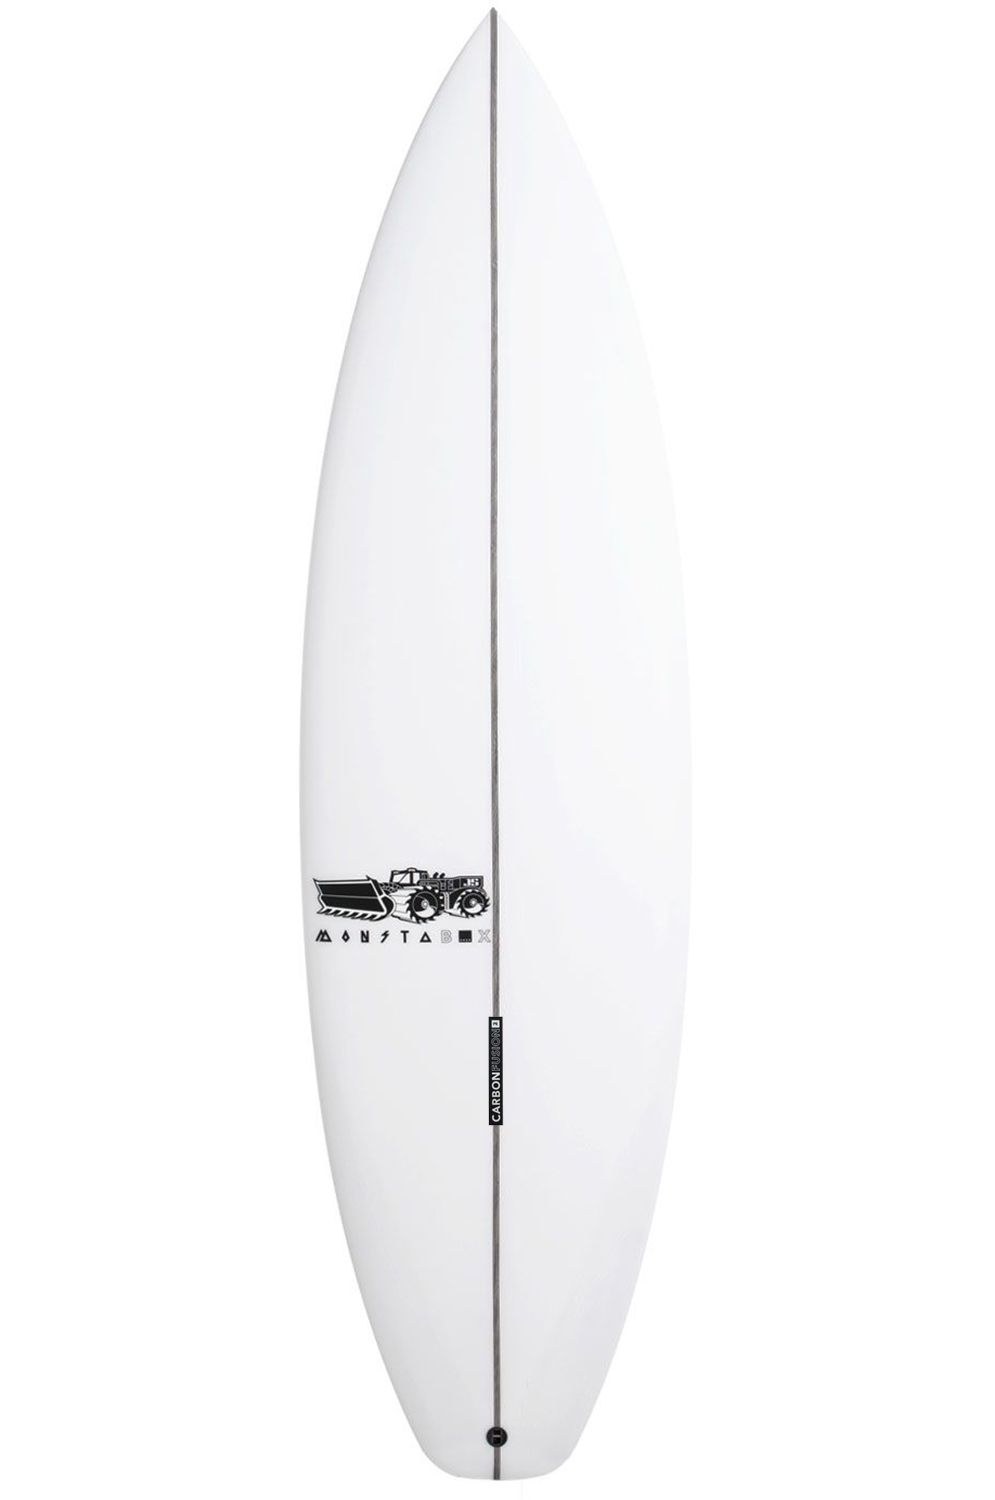 JS Surf Board 5'4 MONSTA BOX 2020 YOUTH PE Squash Tail - White FCS II 5ft4